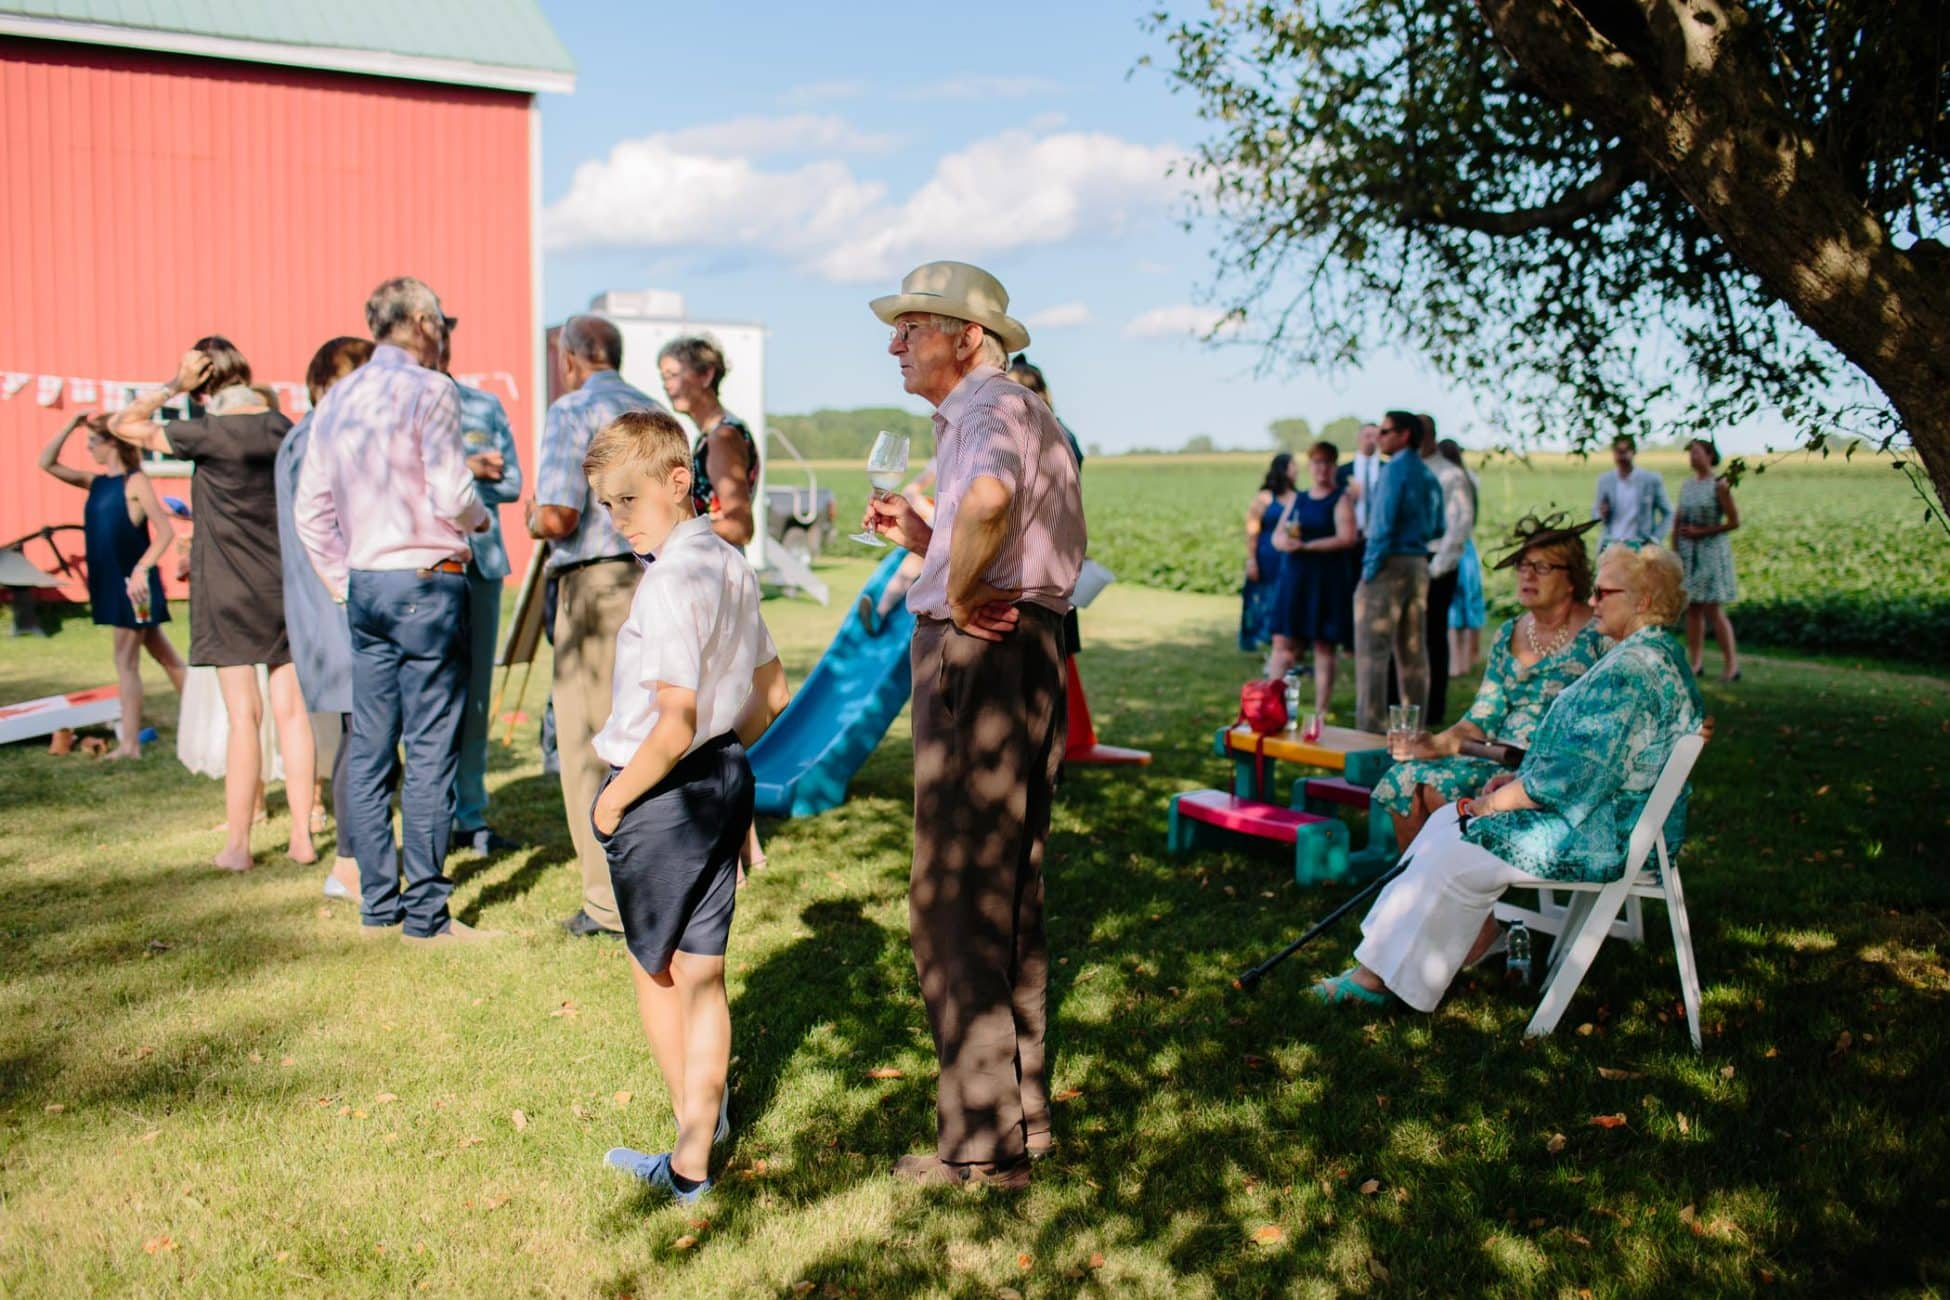 A dozen wedding guests and a young boy standing under a tree in mottled shade during the cocktail reception at a family farm wedding in rural Ontario.